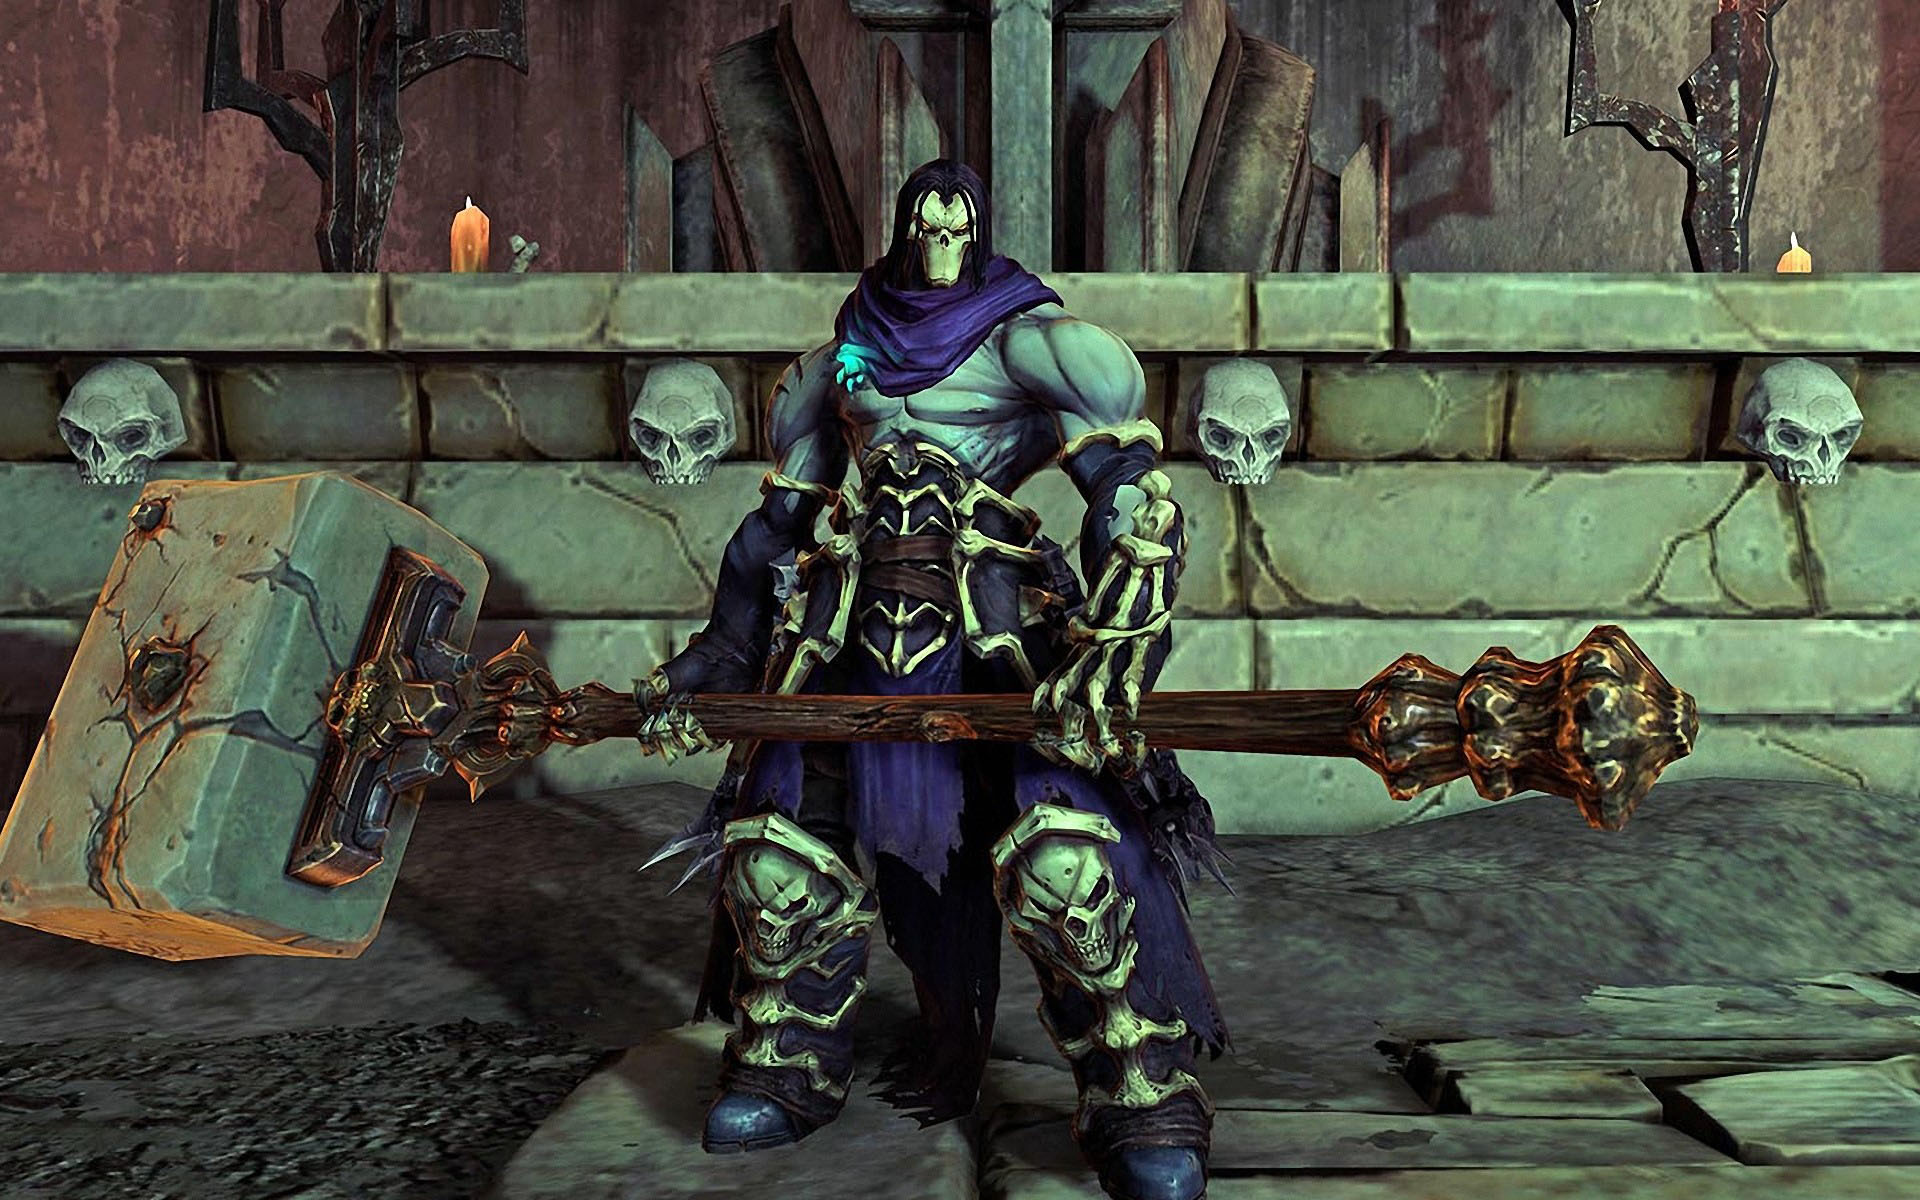 How to run Darksiders 2 on a very weak 2000 PC 69